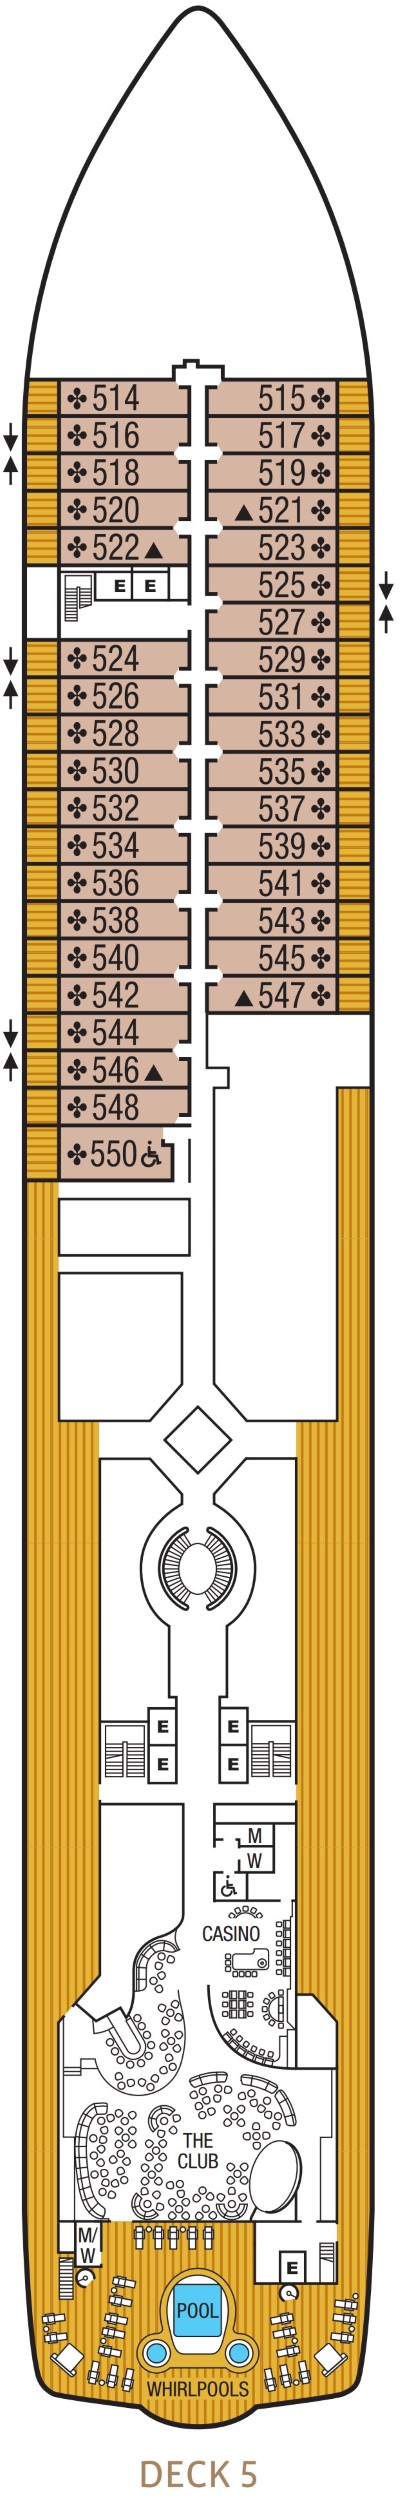 Seabourn Encore Deck 5 layout